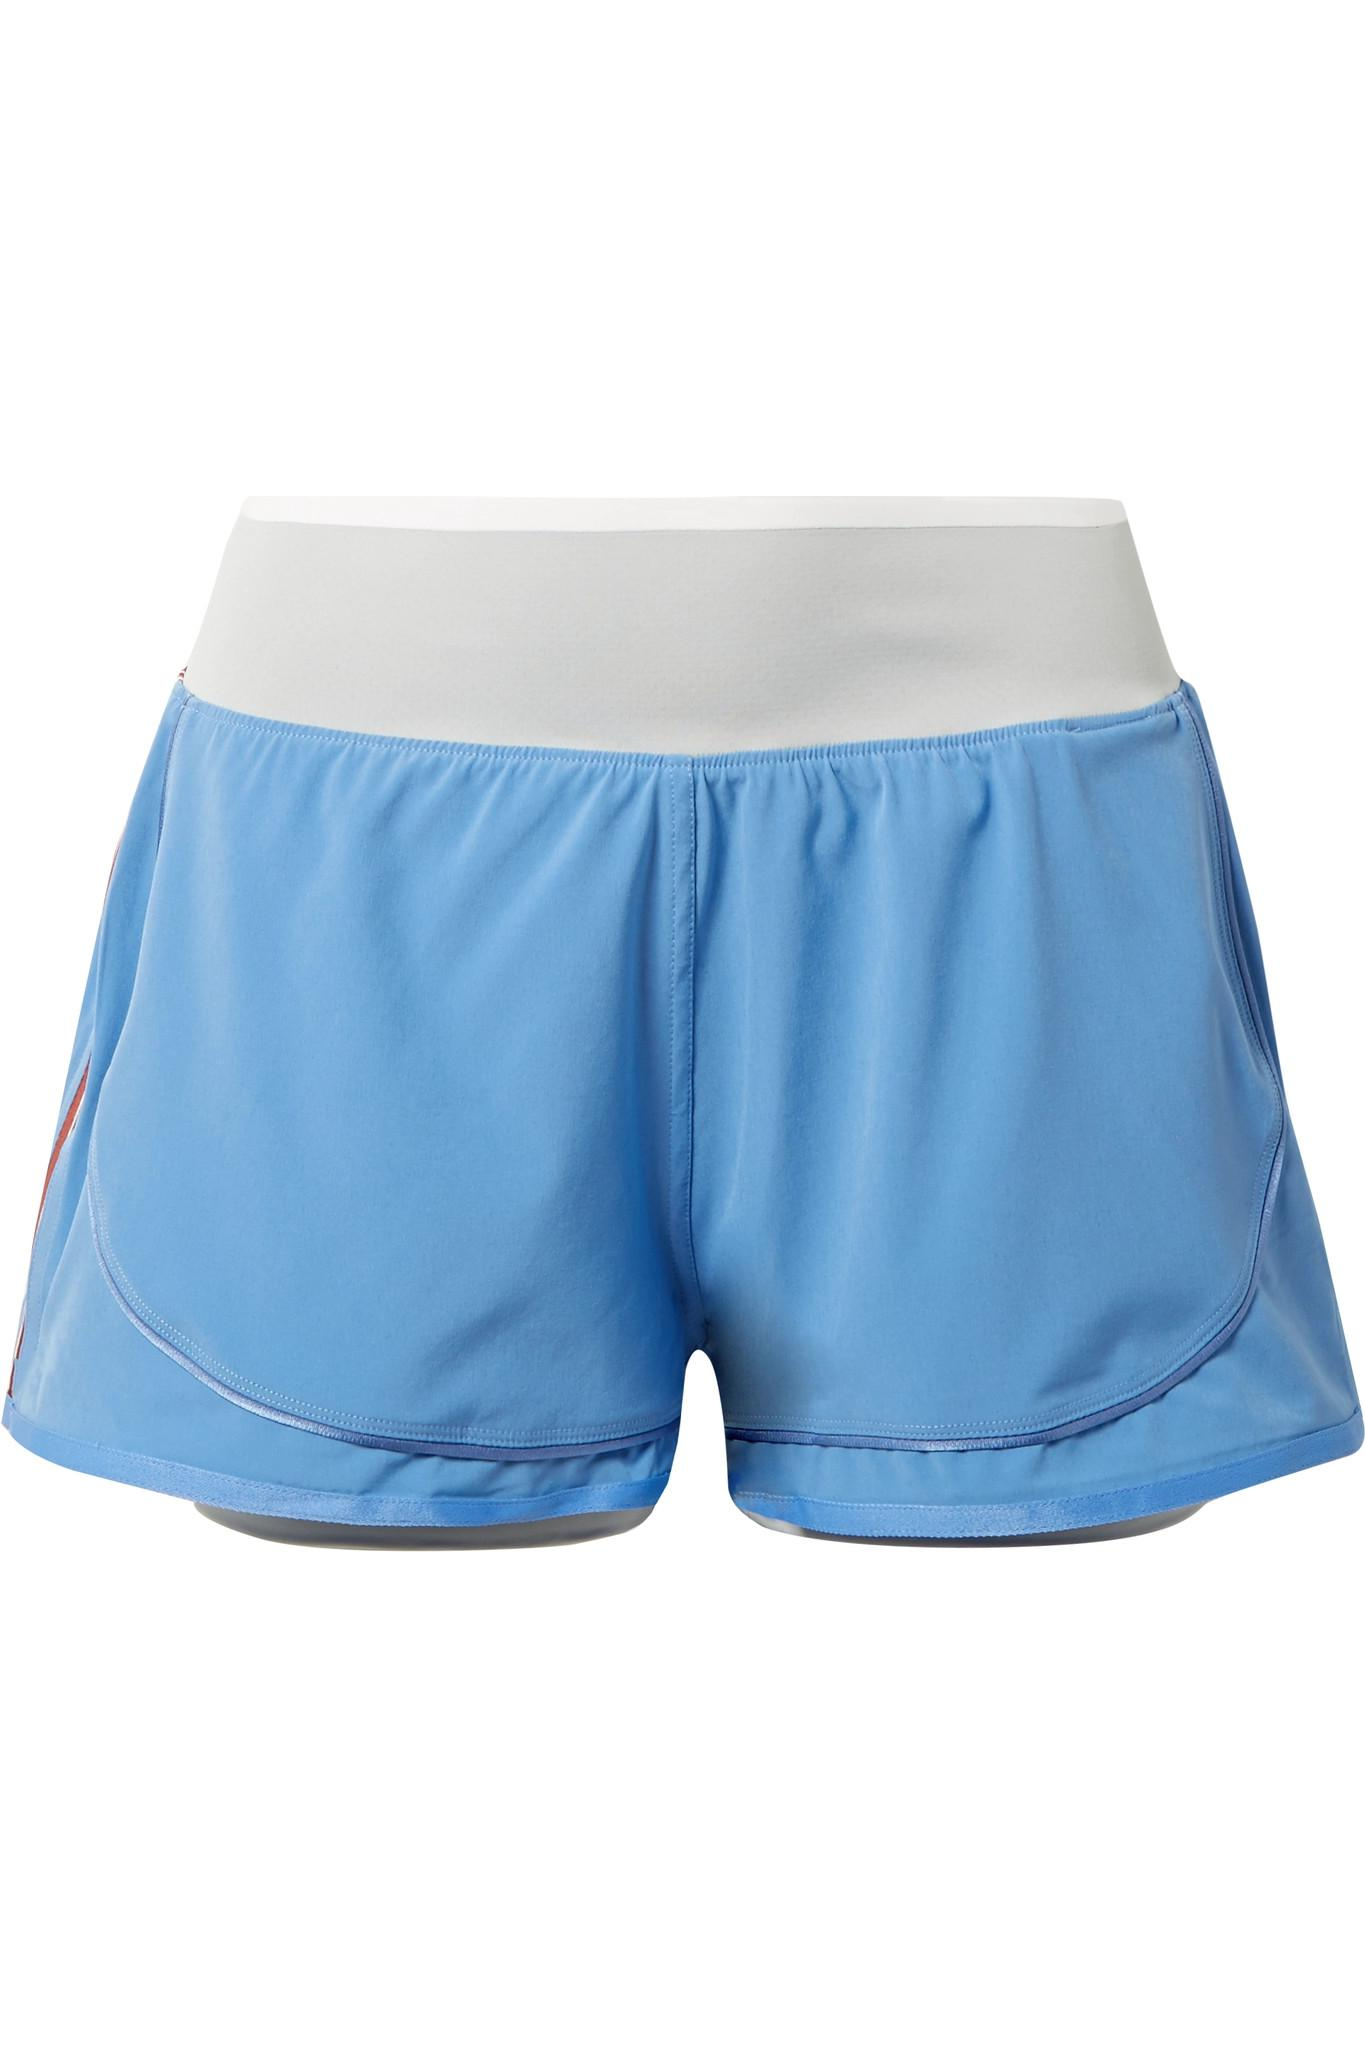 Climastorm Hiit Striped Layered Stretch Shorts - Light blue adidas by Stella McCartney zxoCF7H5